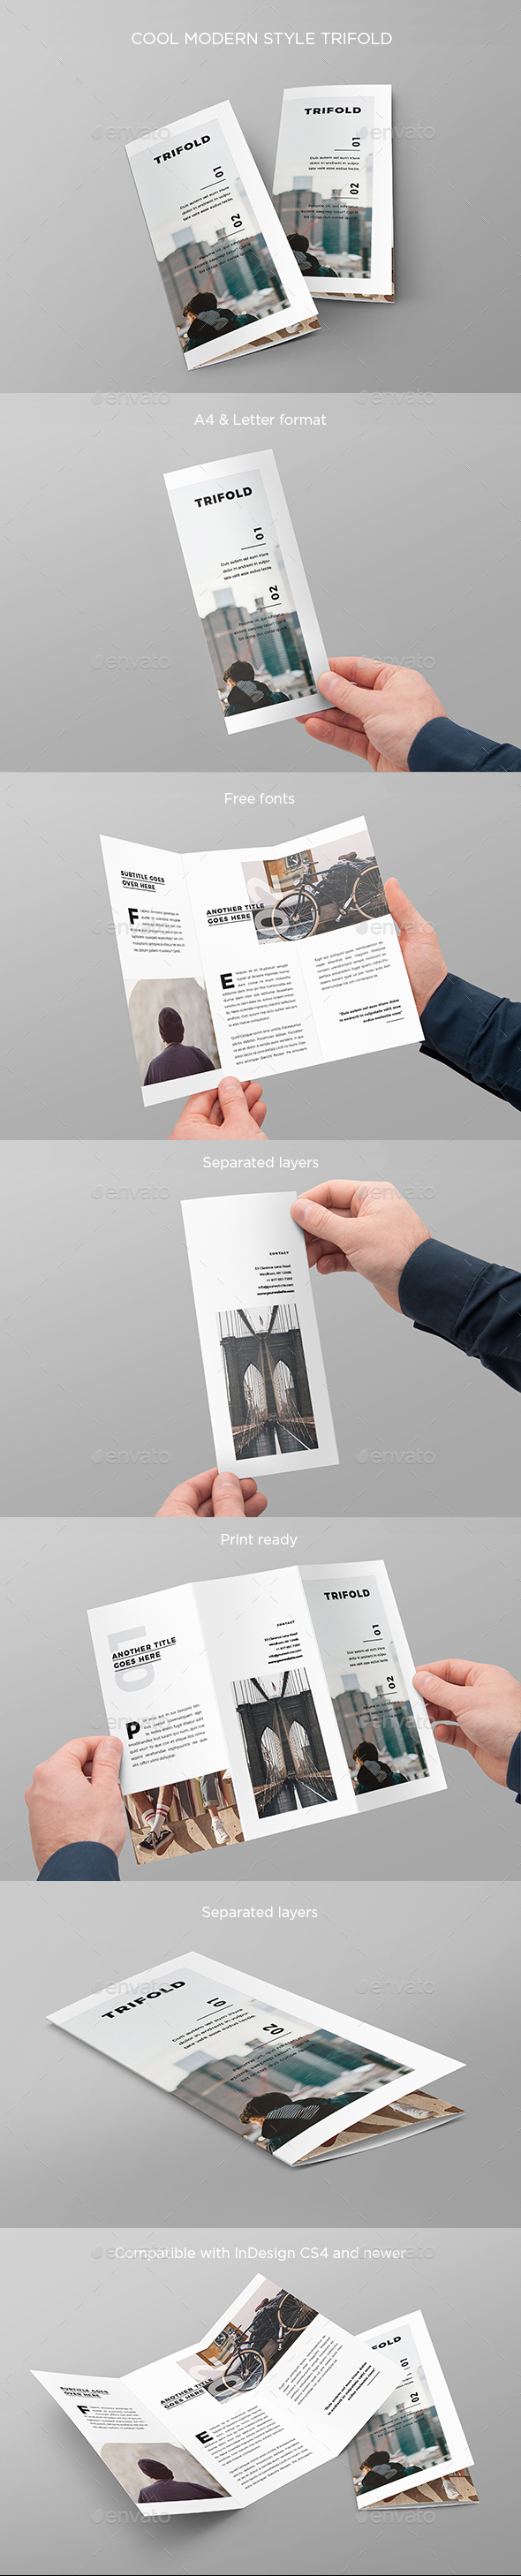 Cool Modern Style Trifold - Brochures Print Templates